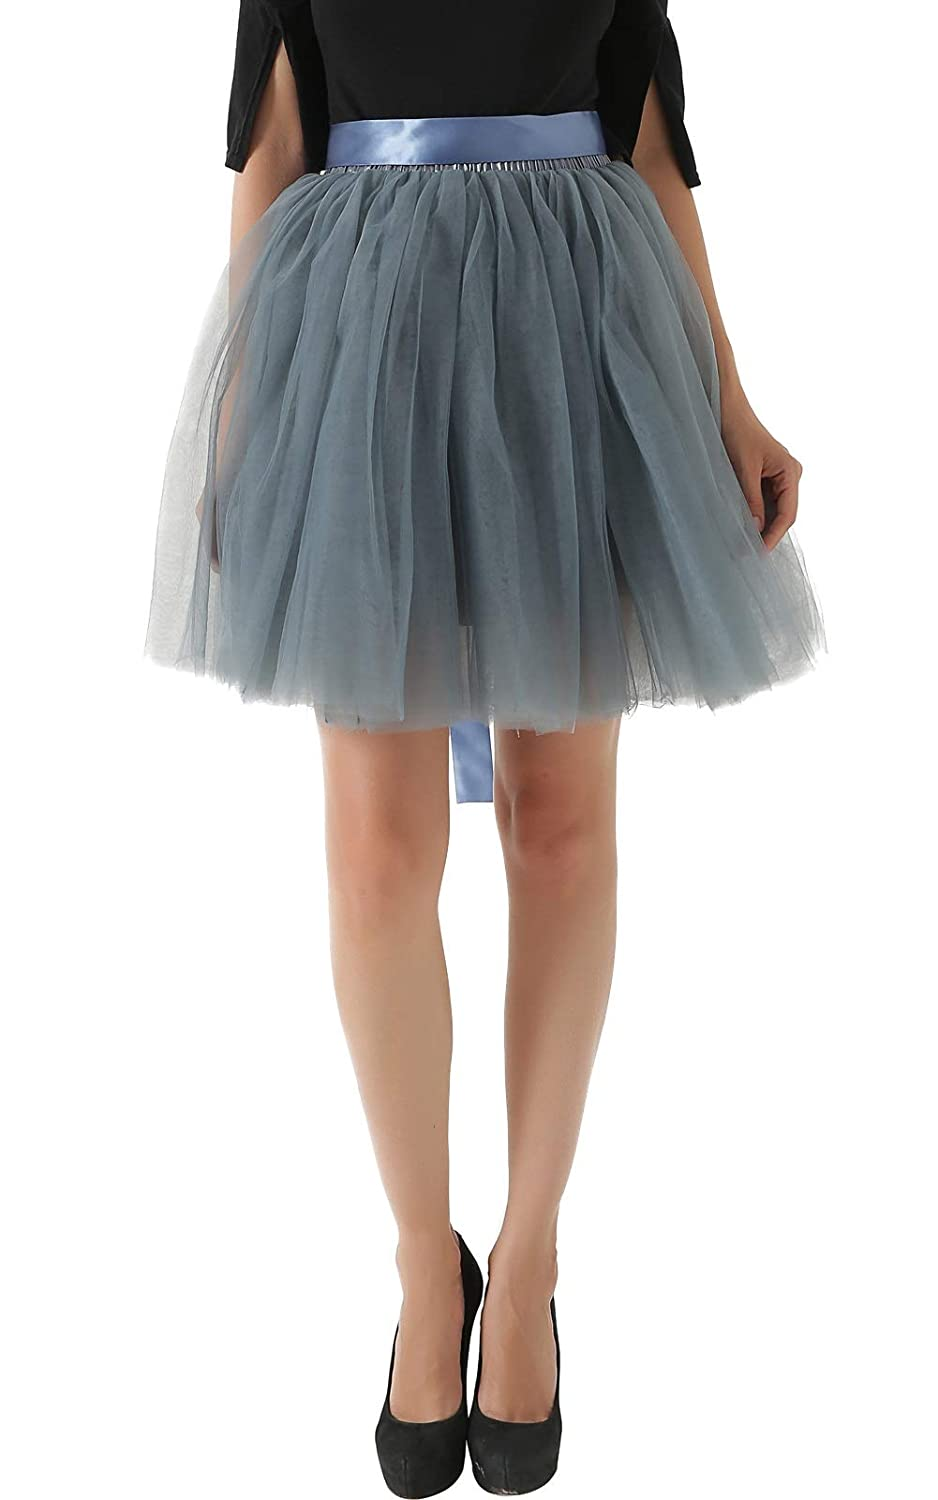 5909d7fde Puffy and comfortable A-line skirt above the knee. 7 Layers:Includes 6  layers of tulle and 1 layer of silk lining. Decorative ribbon adjust waist  size.